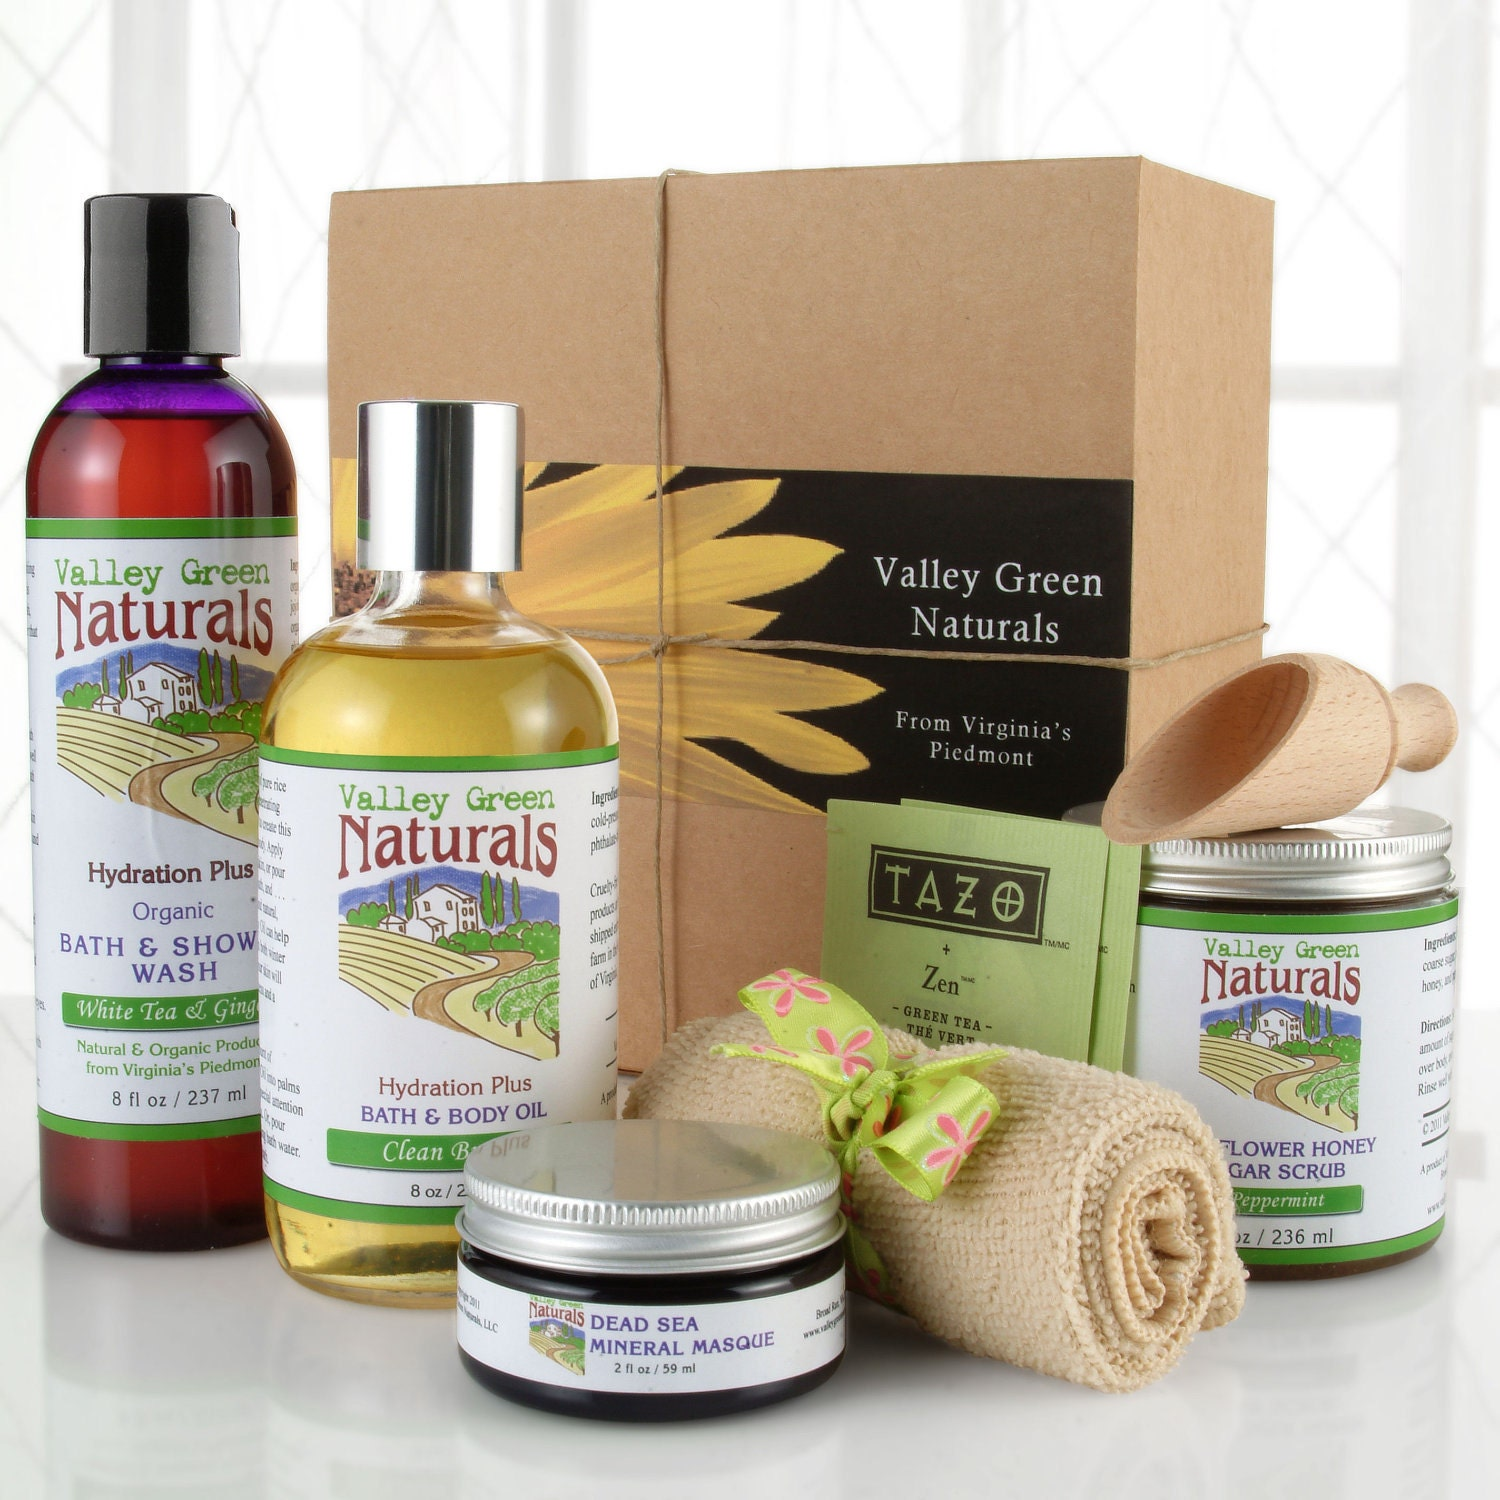 A Day at the Spa Gift Box, by Valley Green Naturals